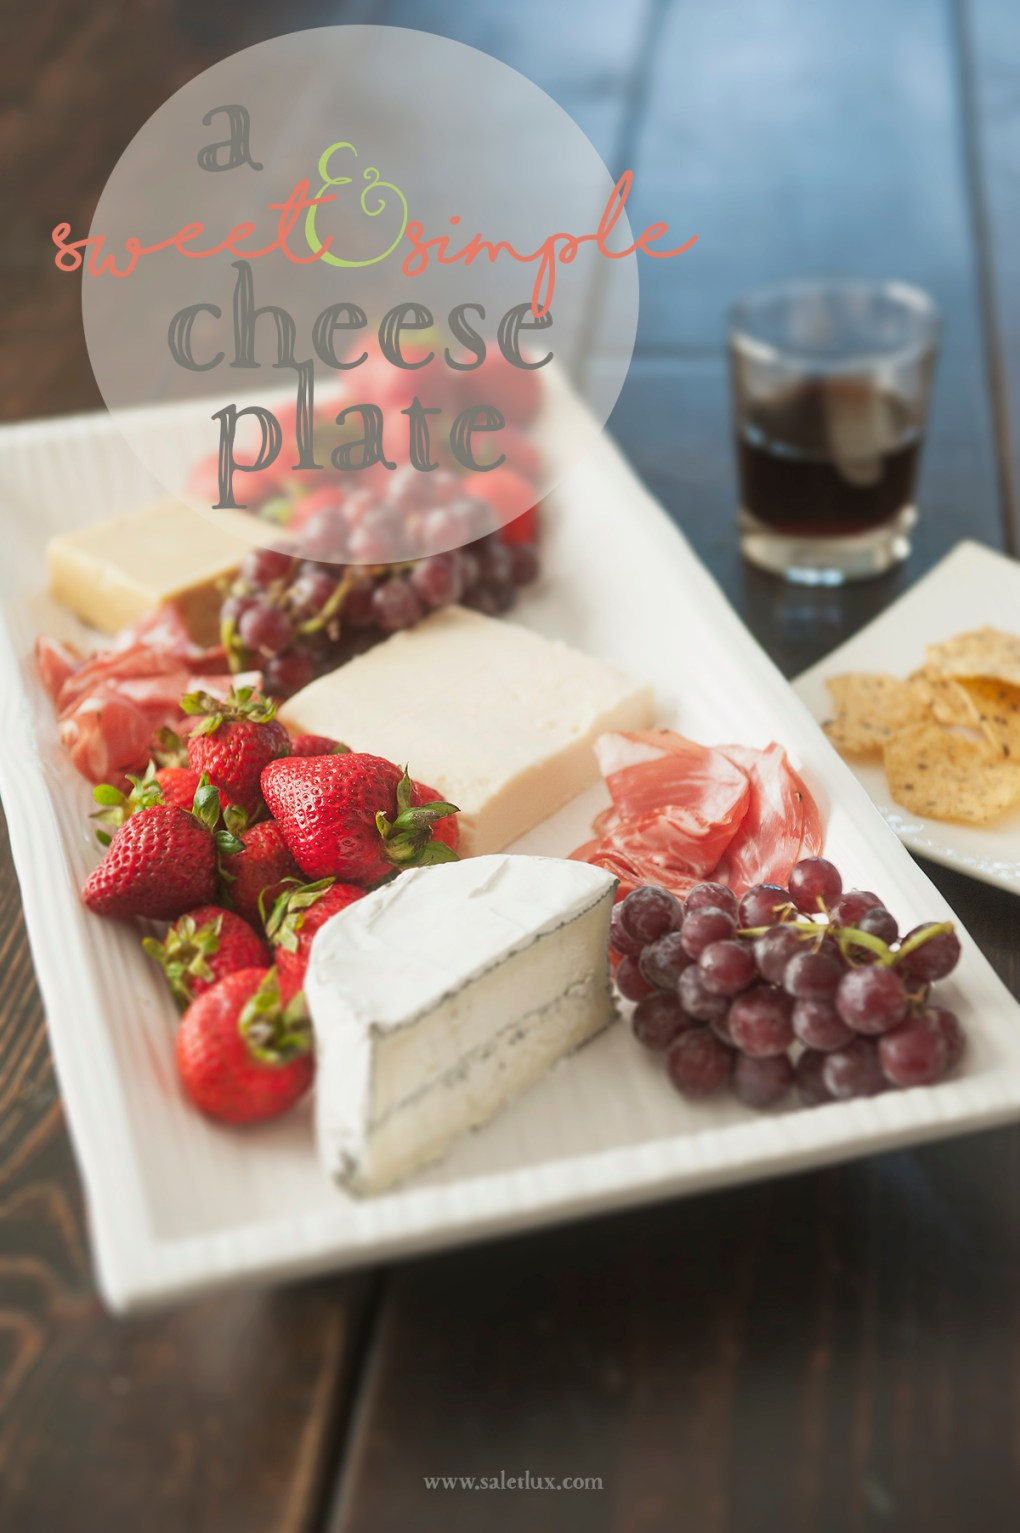 easy-cheese-plate-photo-1